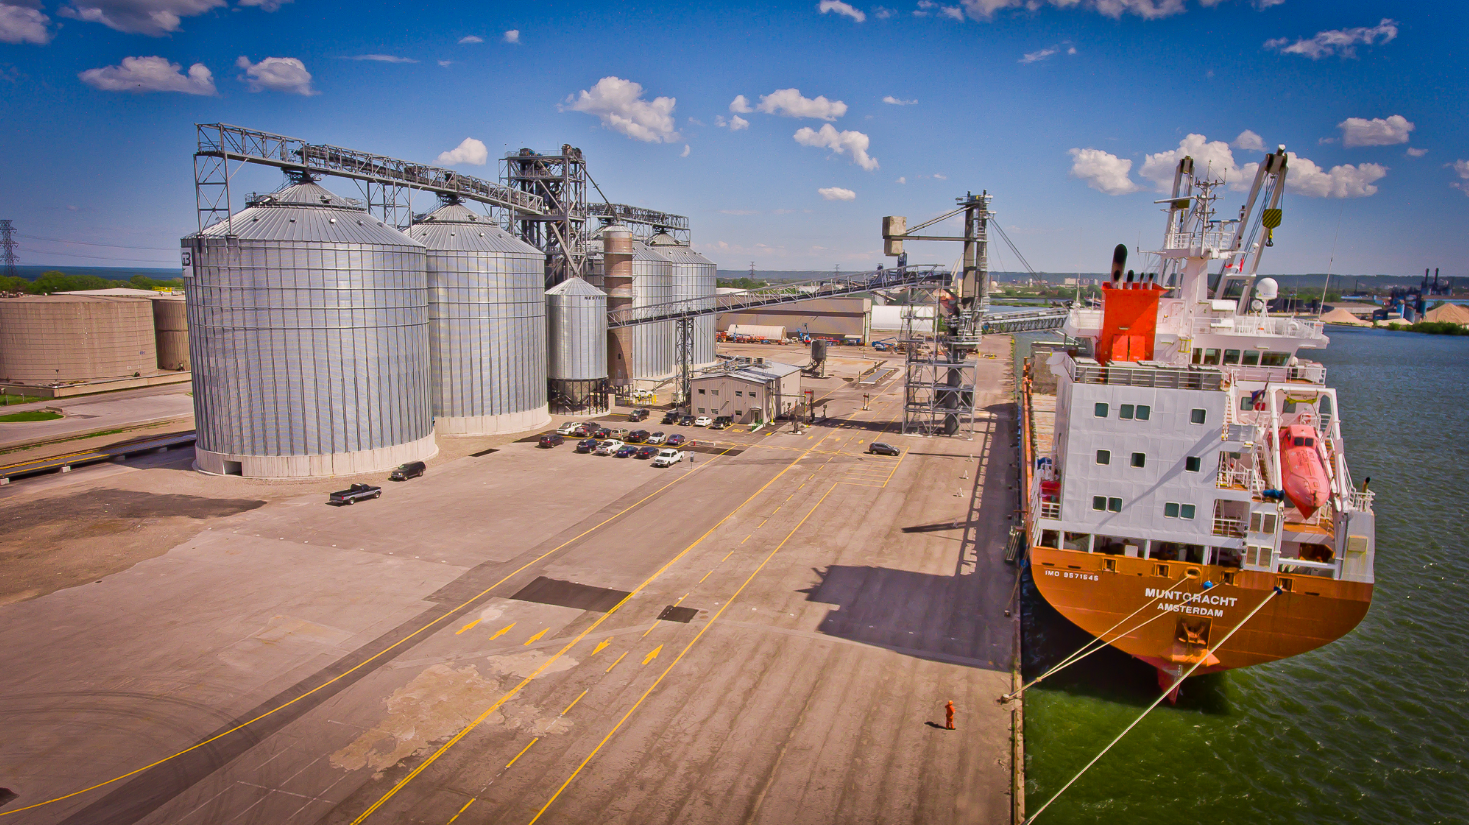 Hamilton ontario grain facility terminal engineering export ship loading